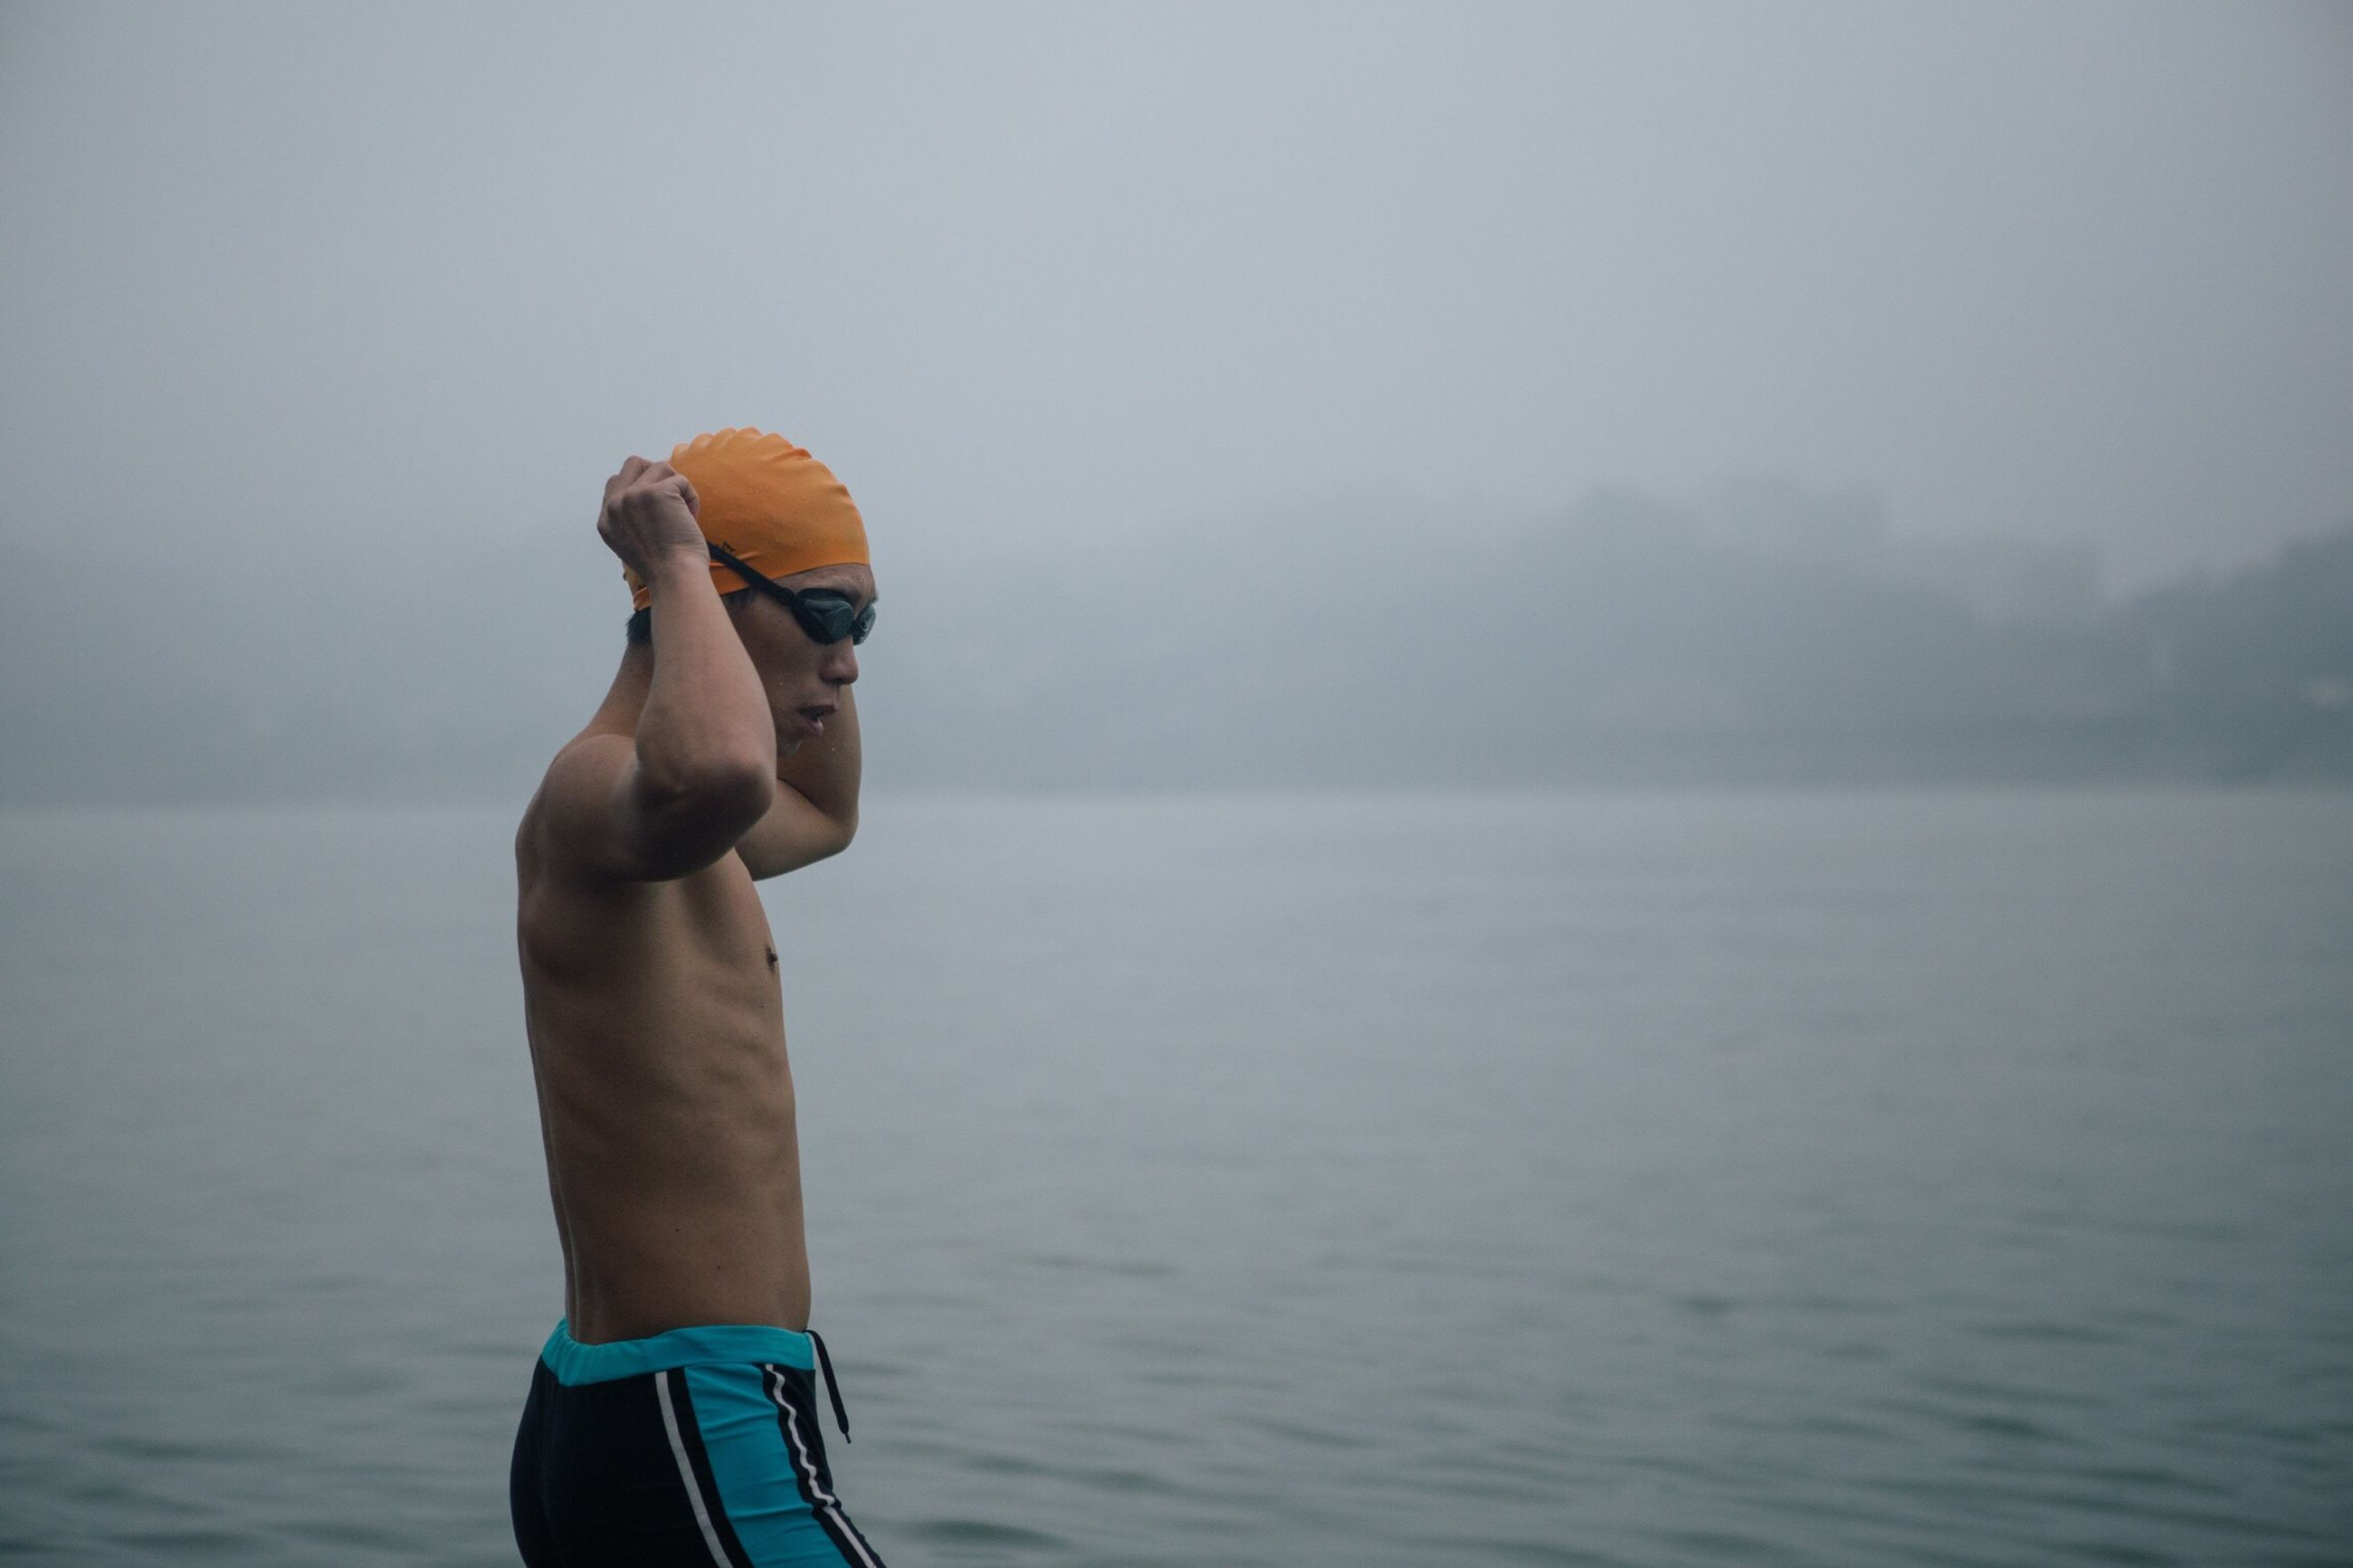 water, sea, shirtless, side view, real people, lifestyles, one person, athlete, men, day, focus on foreground, standing, sports clothing, sky, outdoors, beard, sportsman, leisure activity, only men, young adult, fog, horizon over water, nature, one man only, adults only, adult, people